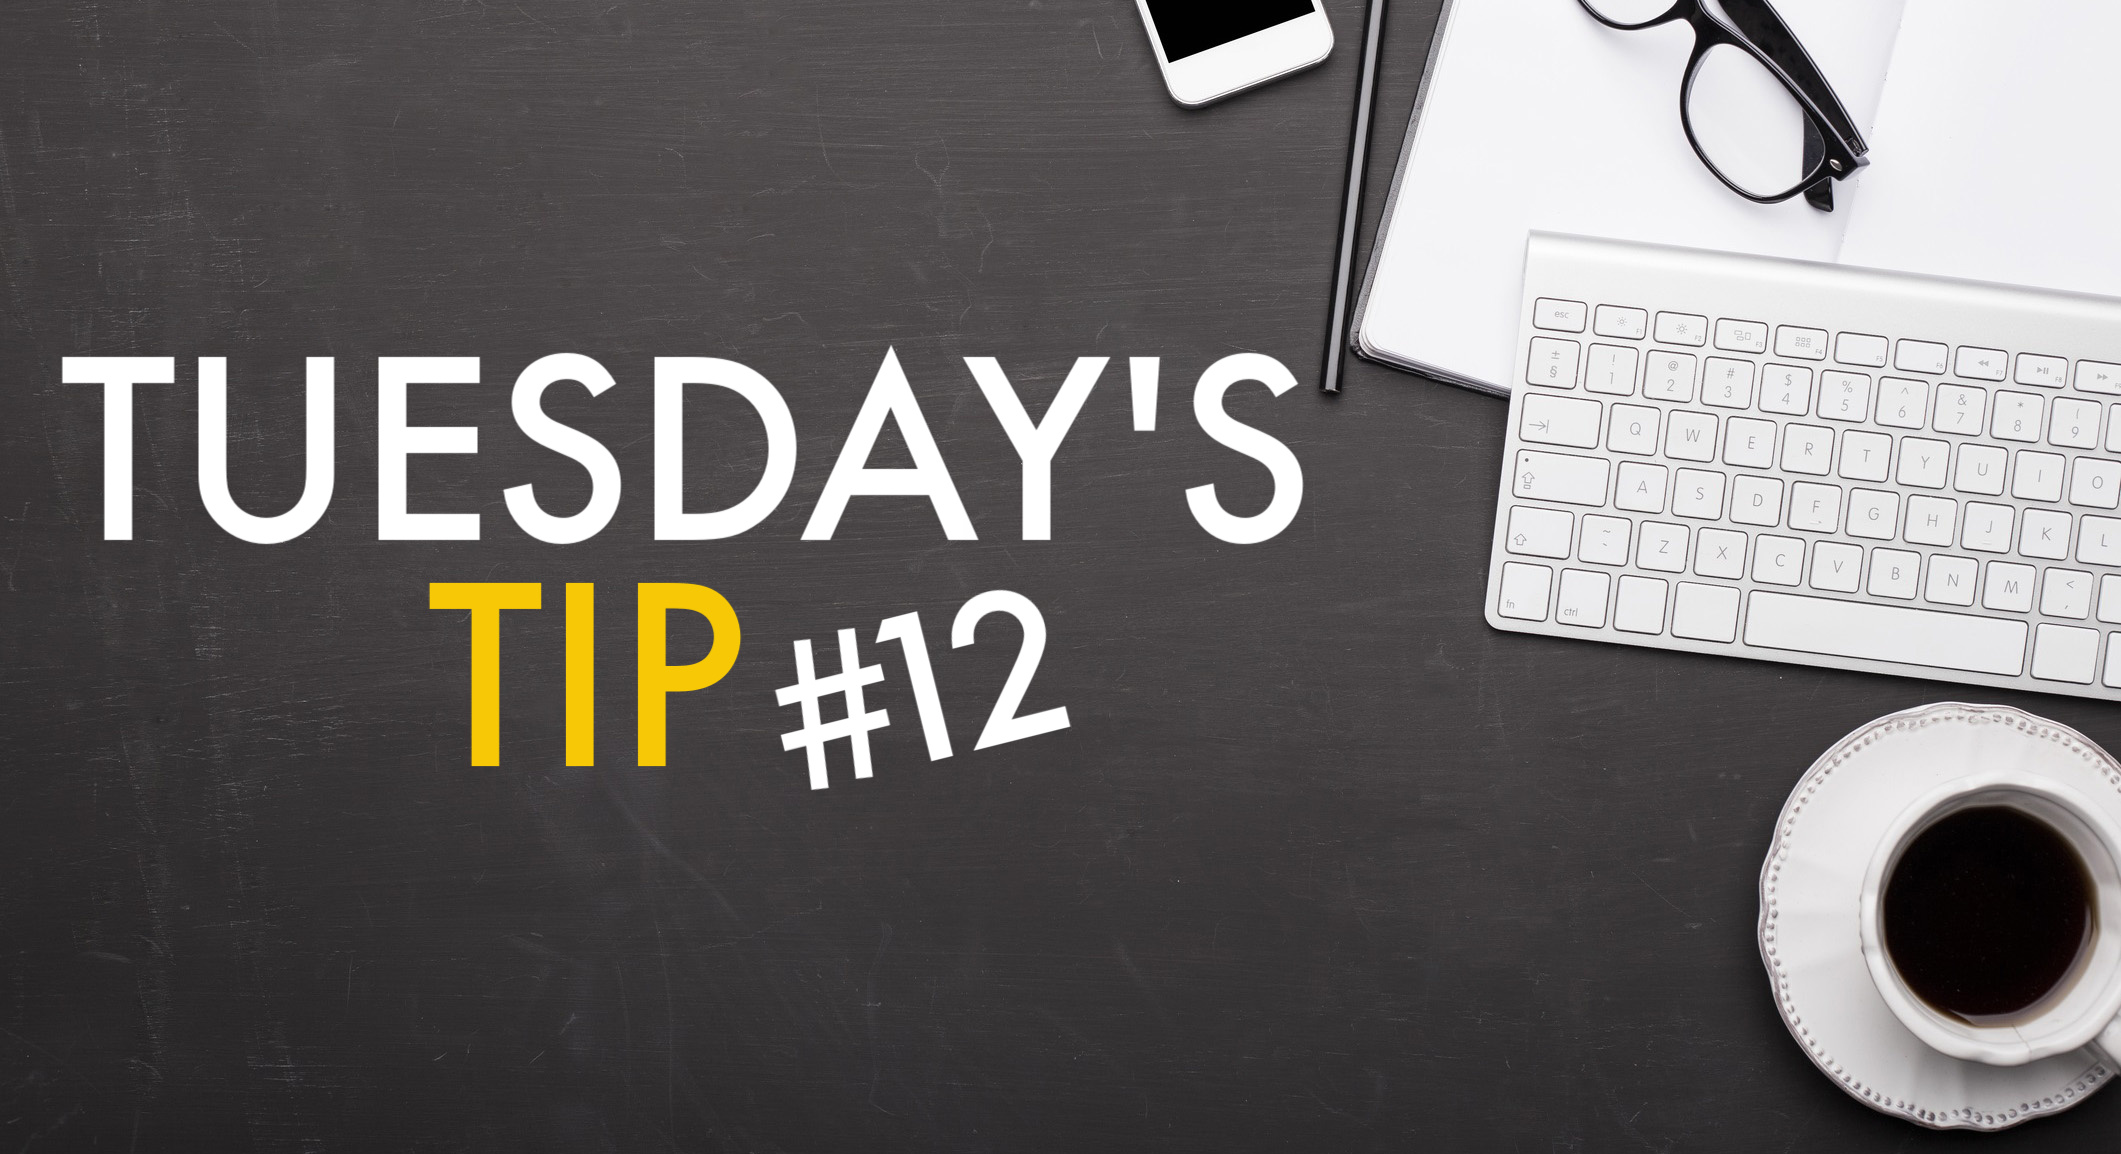 Tuesdays_Tip_12_2019-10-21